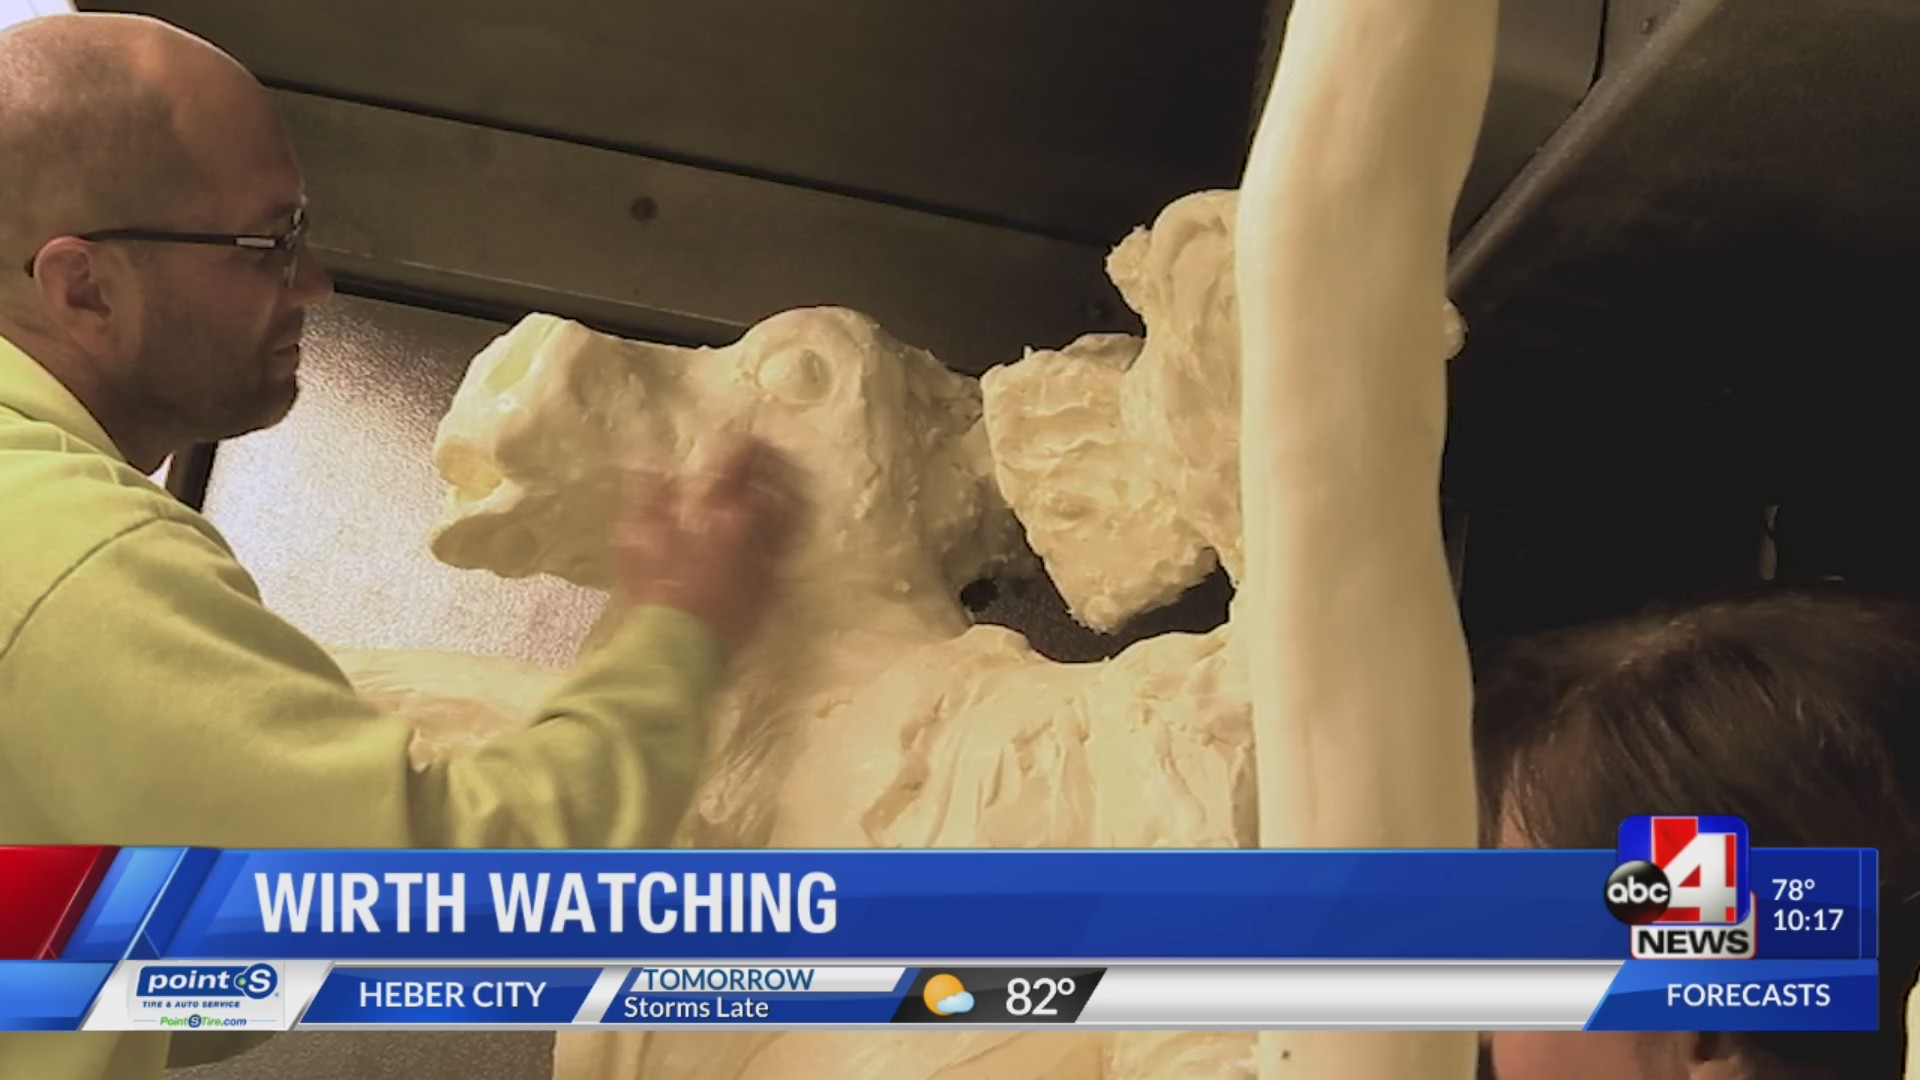 Wirth watching: the utah state fair and the cow made of butter